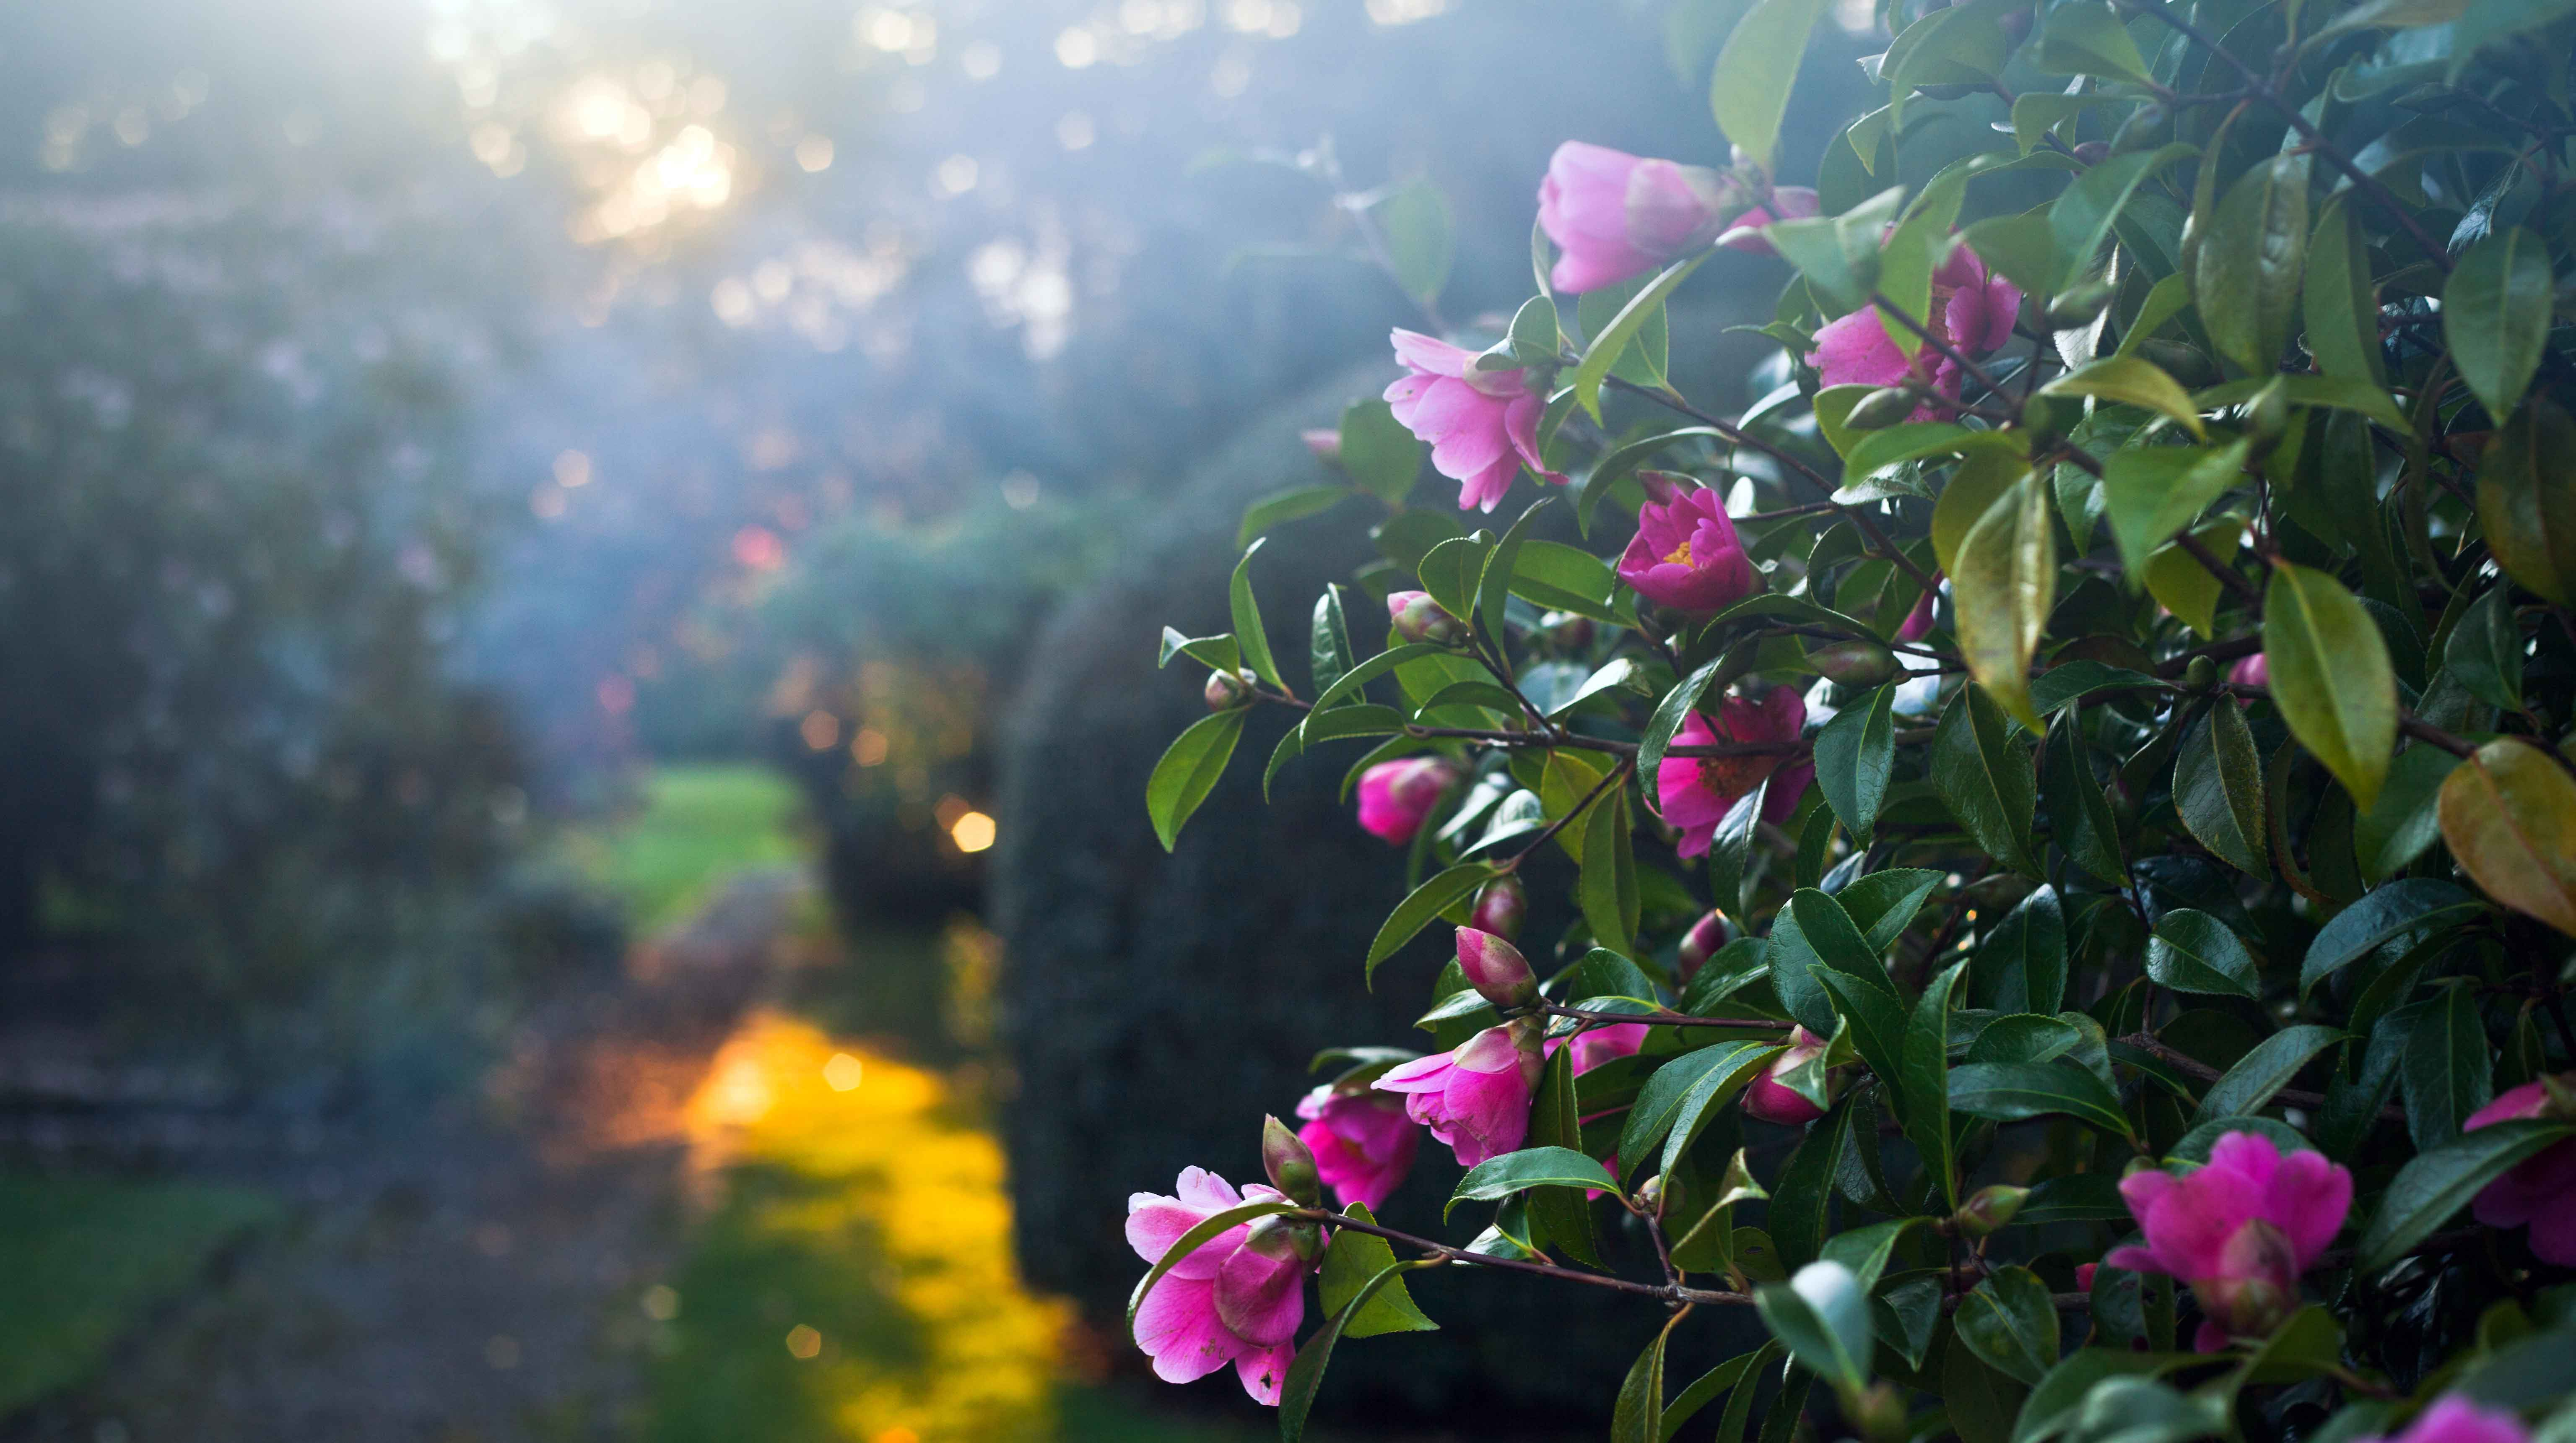 Canva---Pink-Blooming-big-Camellia-bush-with-delicate-rose-flowers